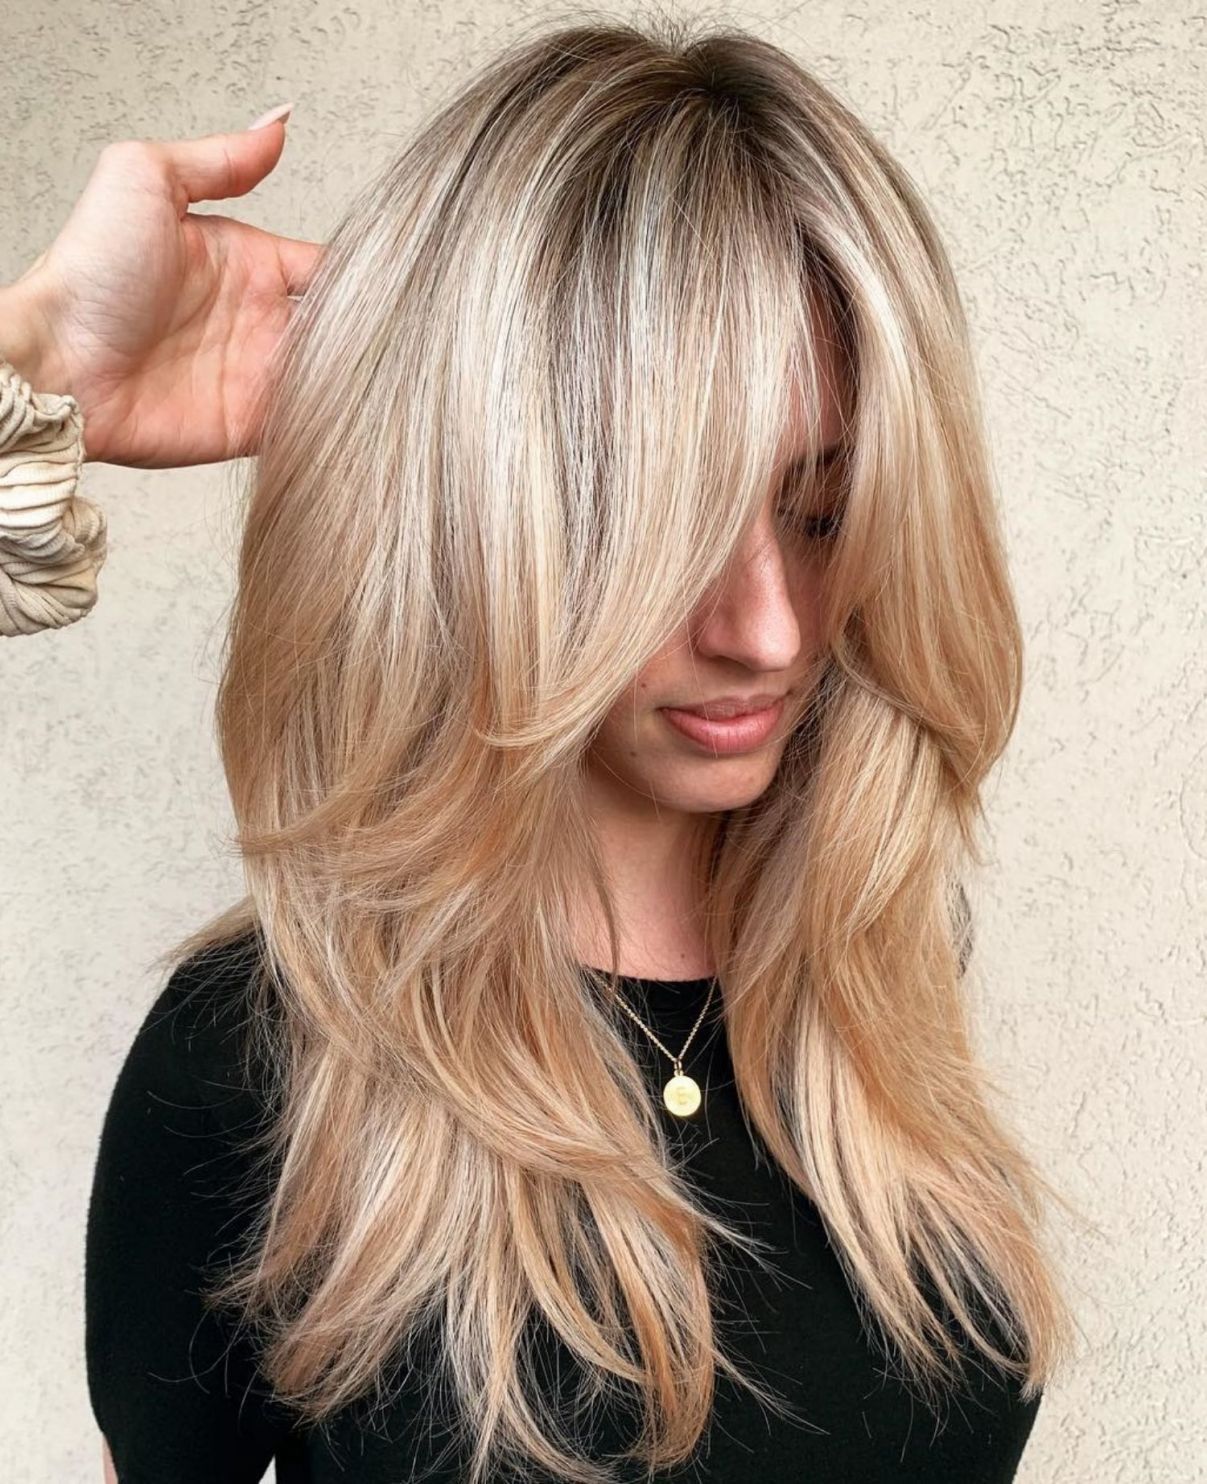 50 Cute And Effortless Long Layered Haircuts With Bangs Layered Haircuts With Bangs Long Haircuts With Bangs Long Hair With Bangs